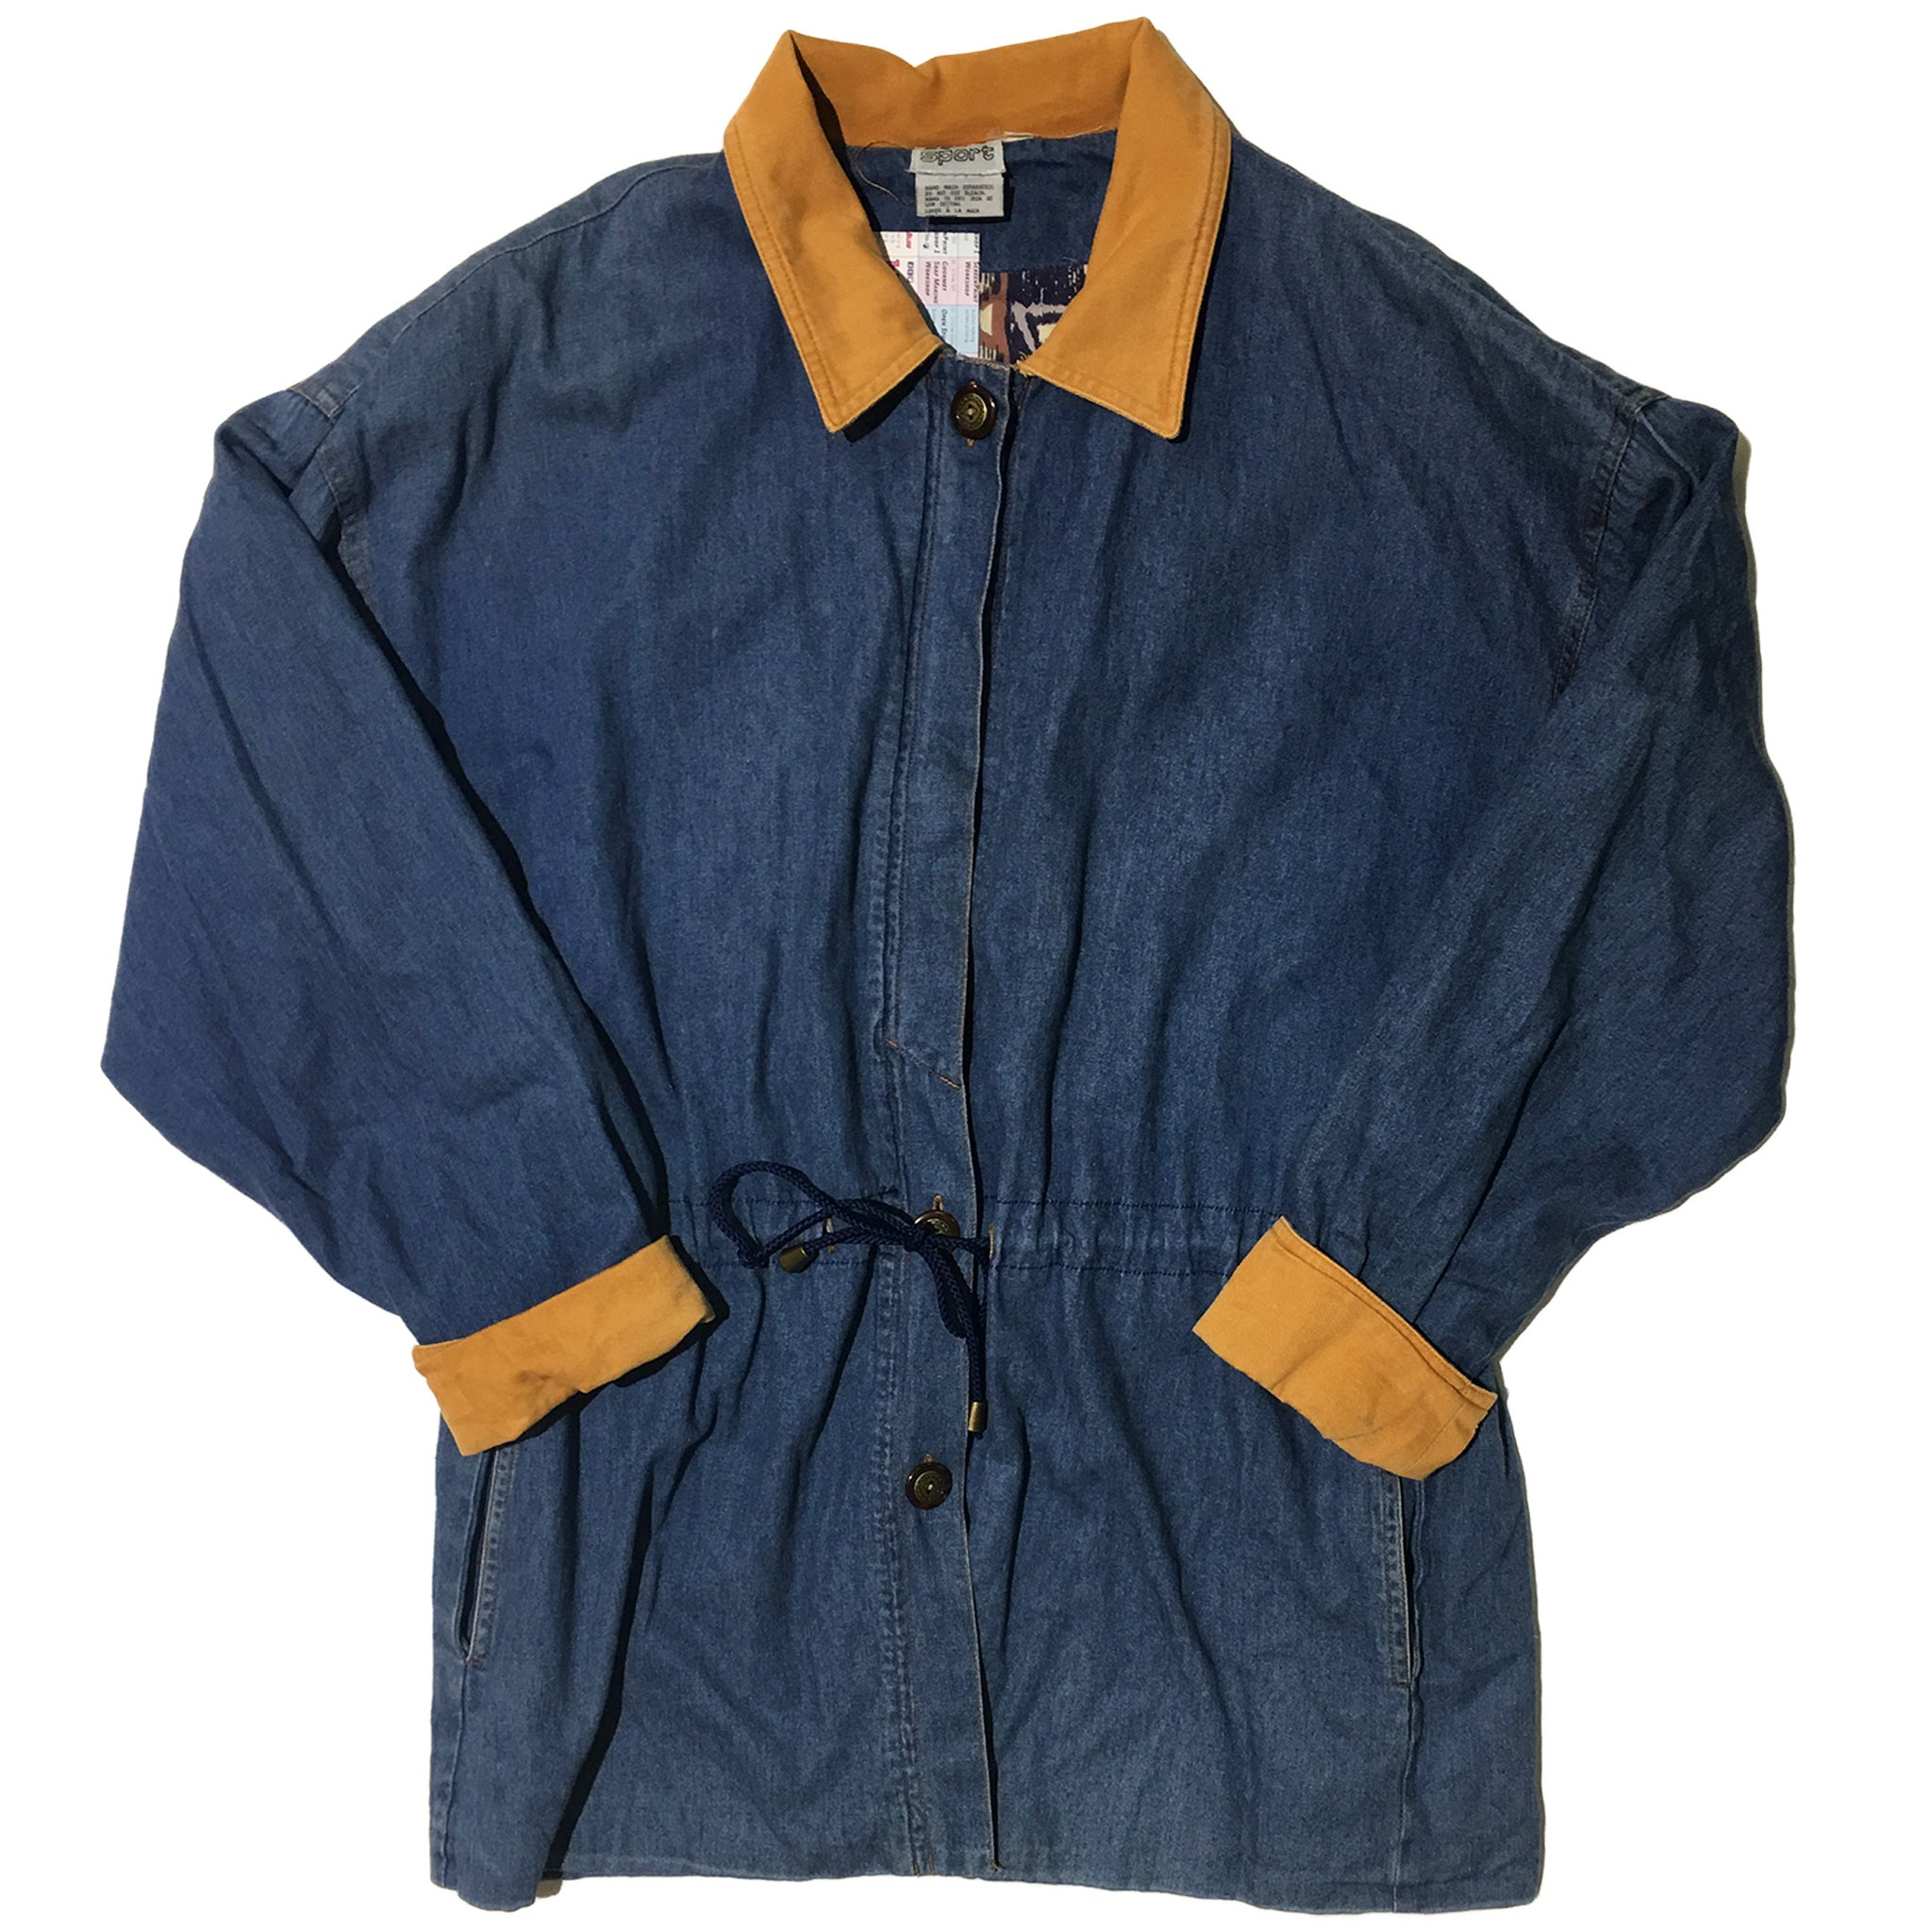 Elle Sport Denim Jacket